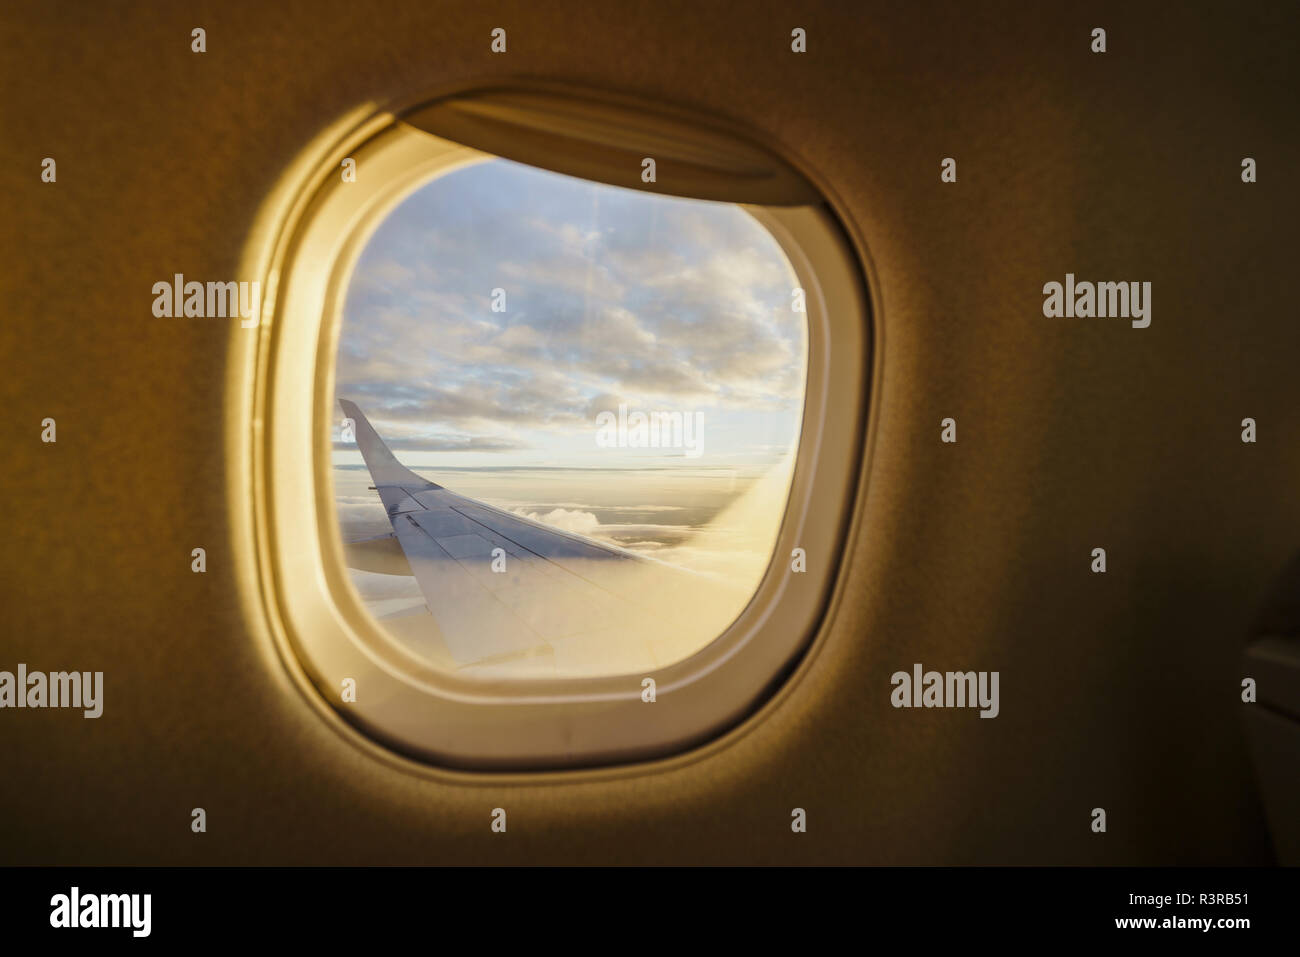 View out of window on wing of a plane Stock Photo